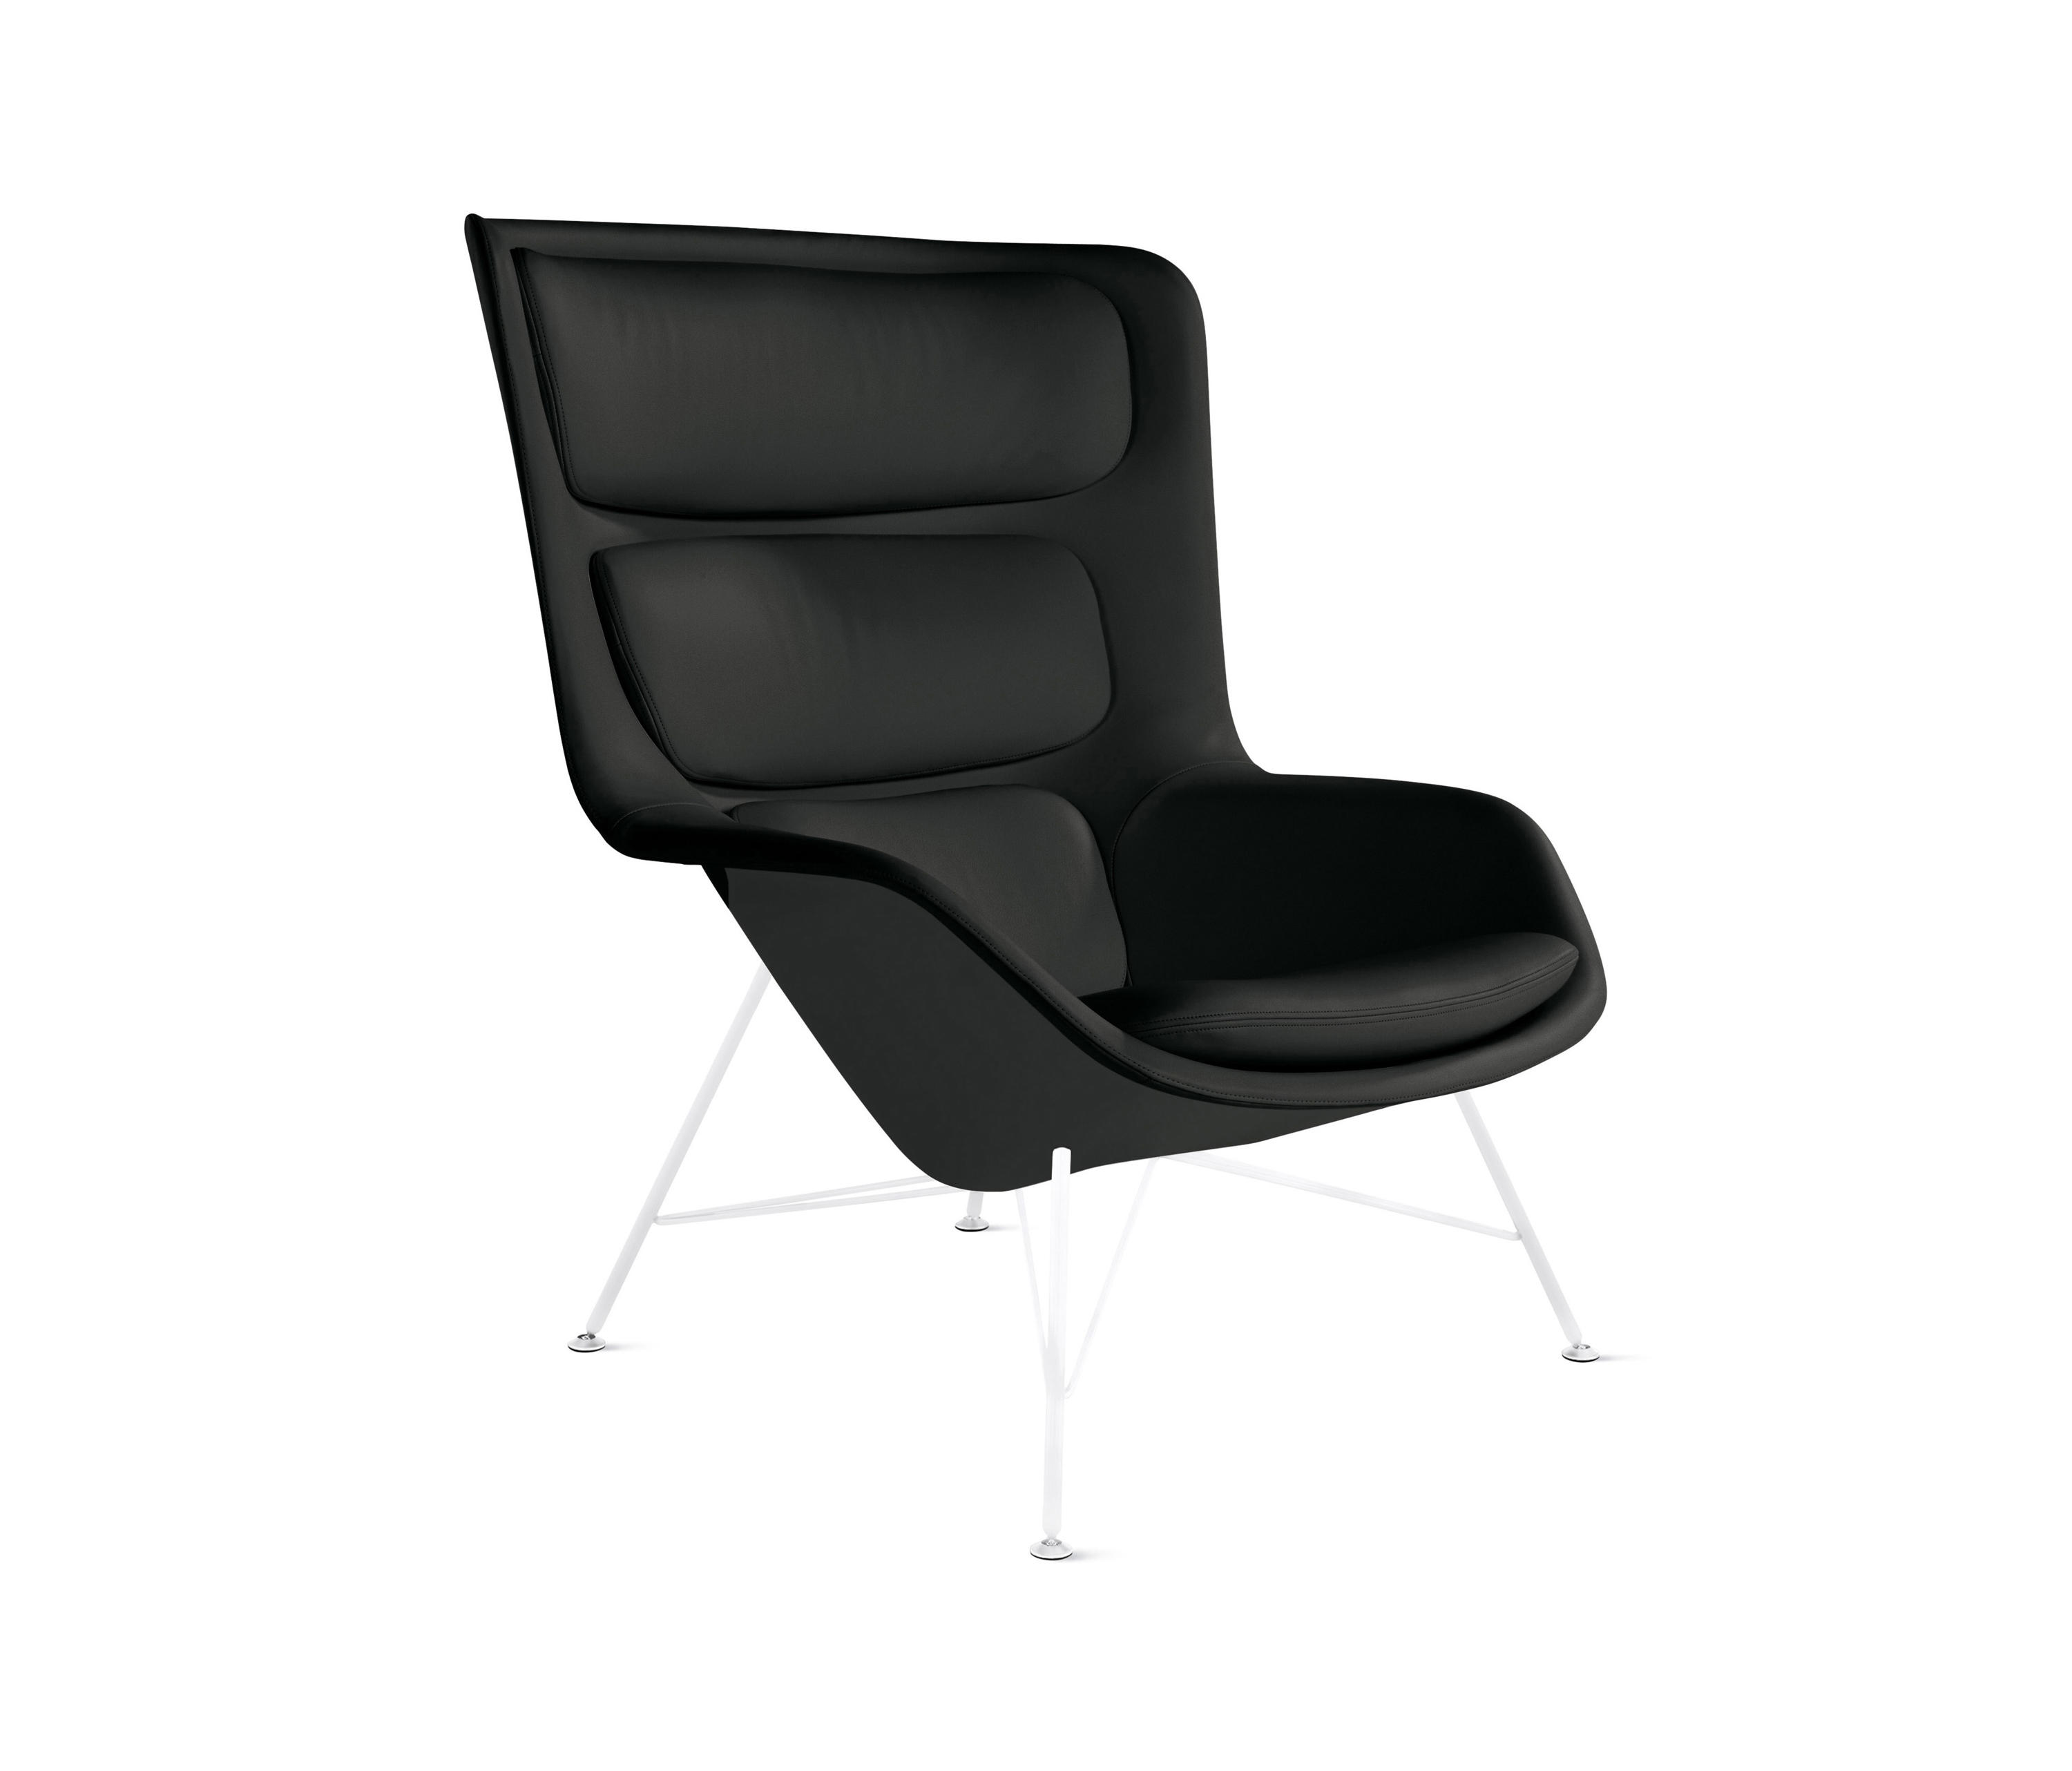 Striad High Back Lounge Chair By Design Within Reach Chairs